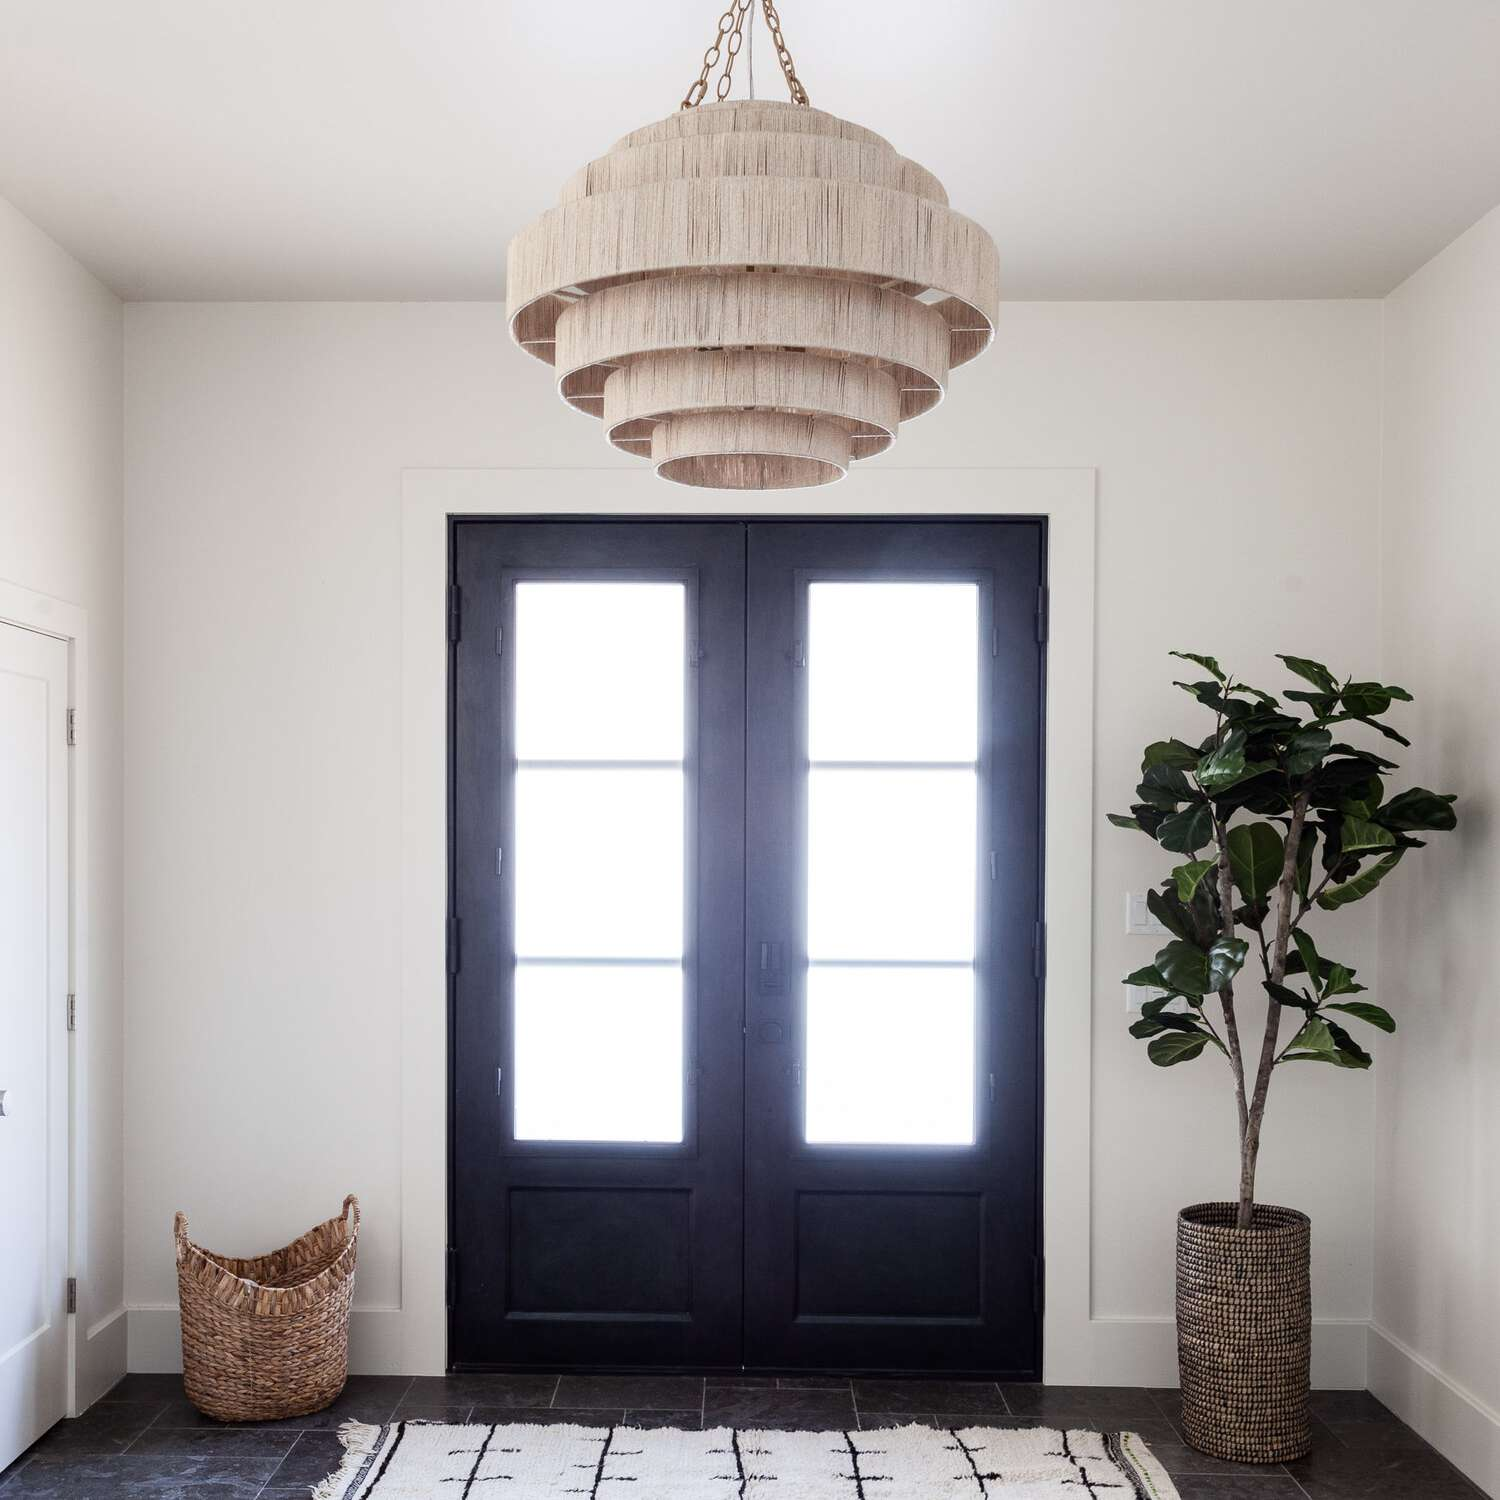 A foyer with a large ivory chandelier